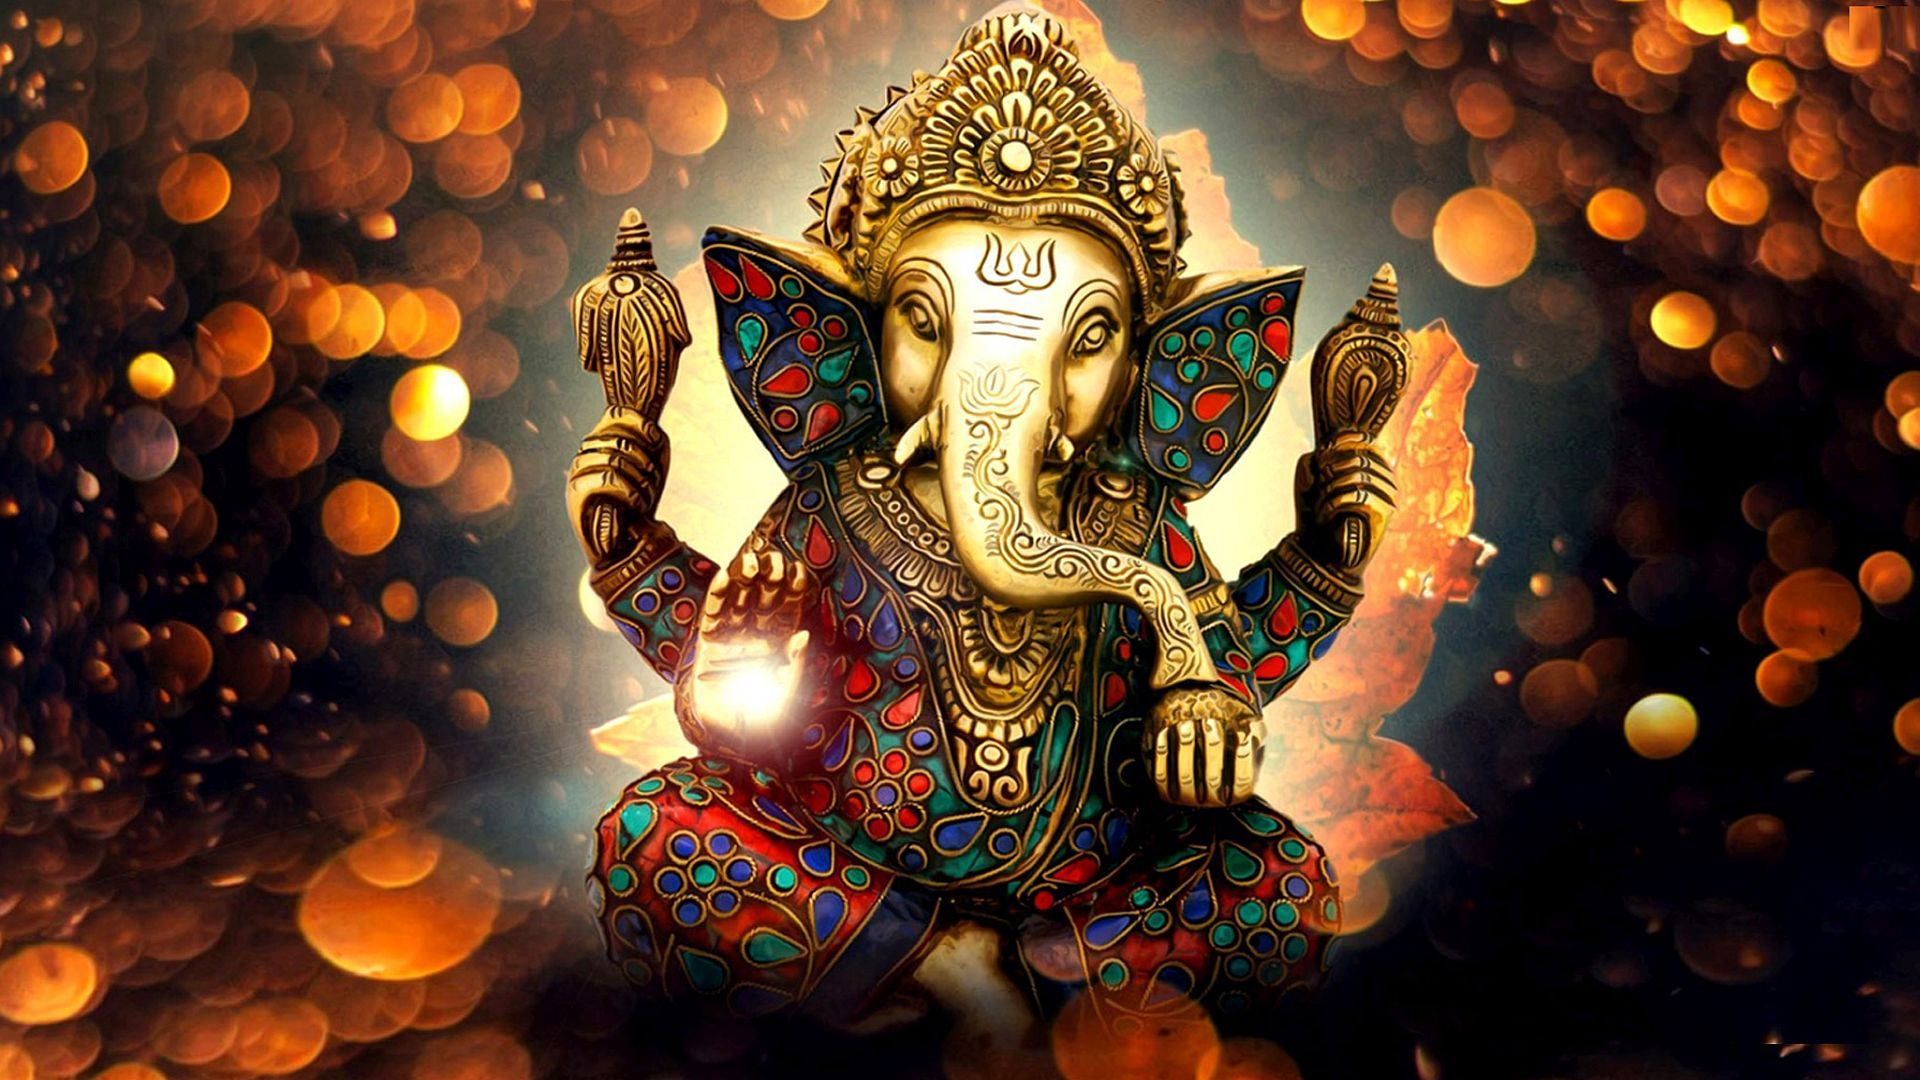 Hindu Gods And Goddesses Lord Ganesha Ganesha Pictures Ganesh Images Ganesh Chaturthi Images